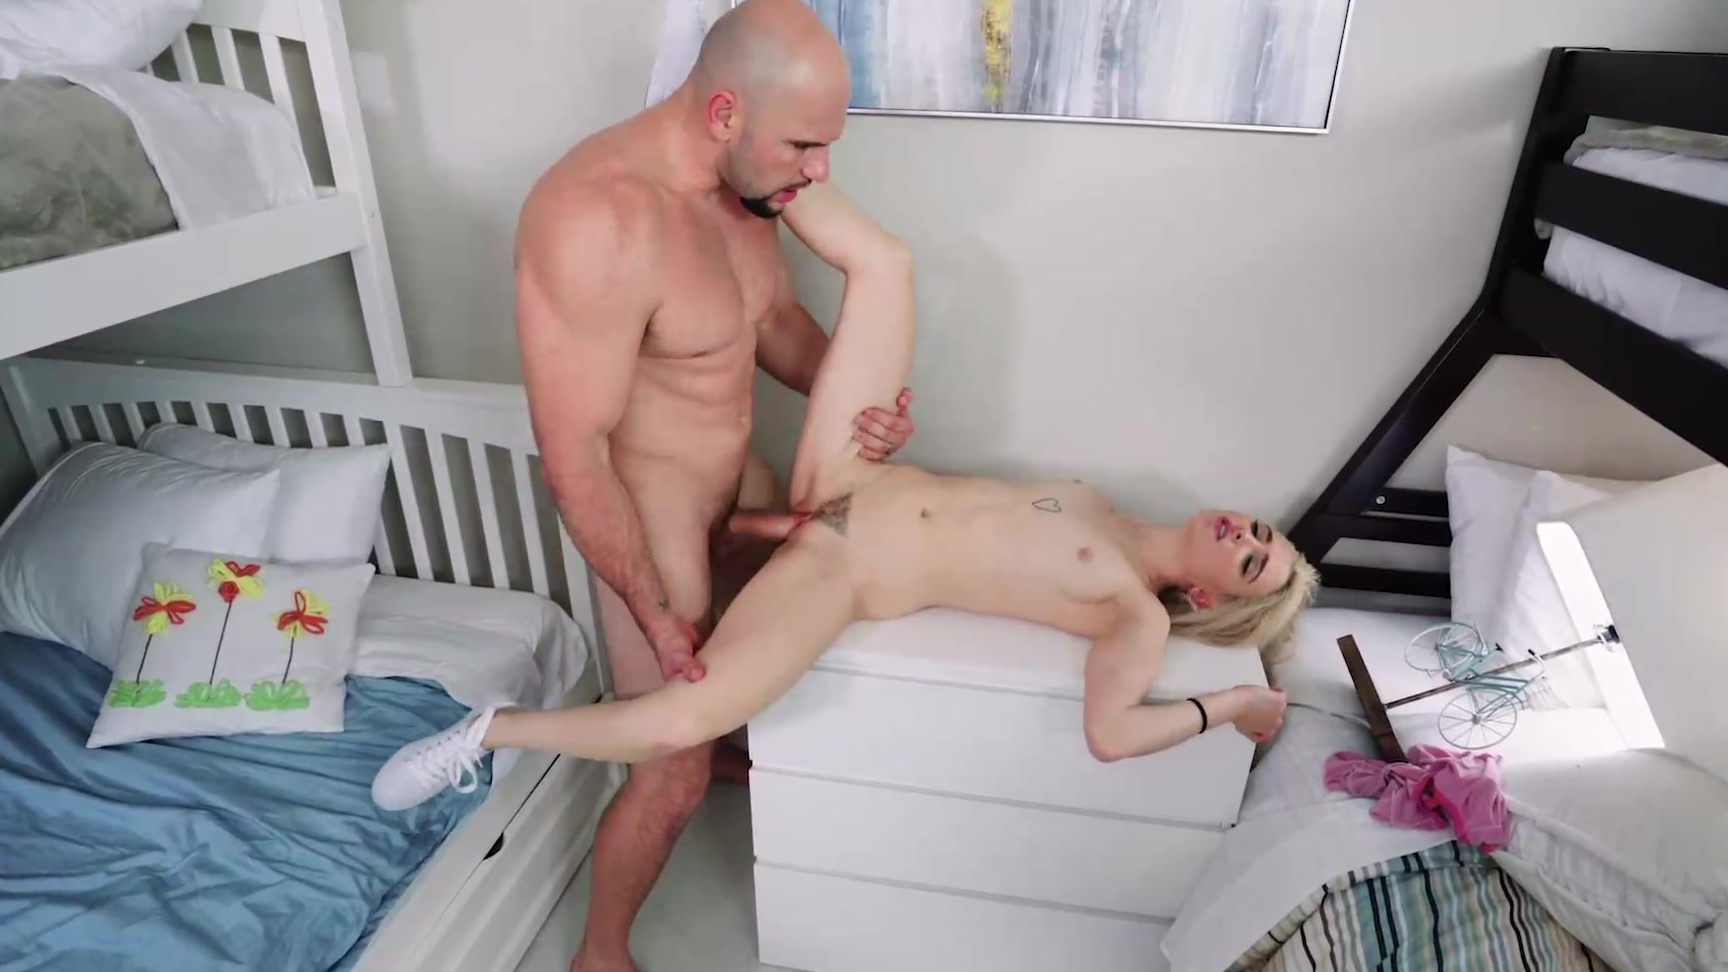 are absolutely teamskeet facial tits ass cumshot compilation video opinion the theme